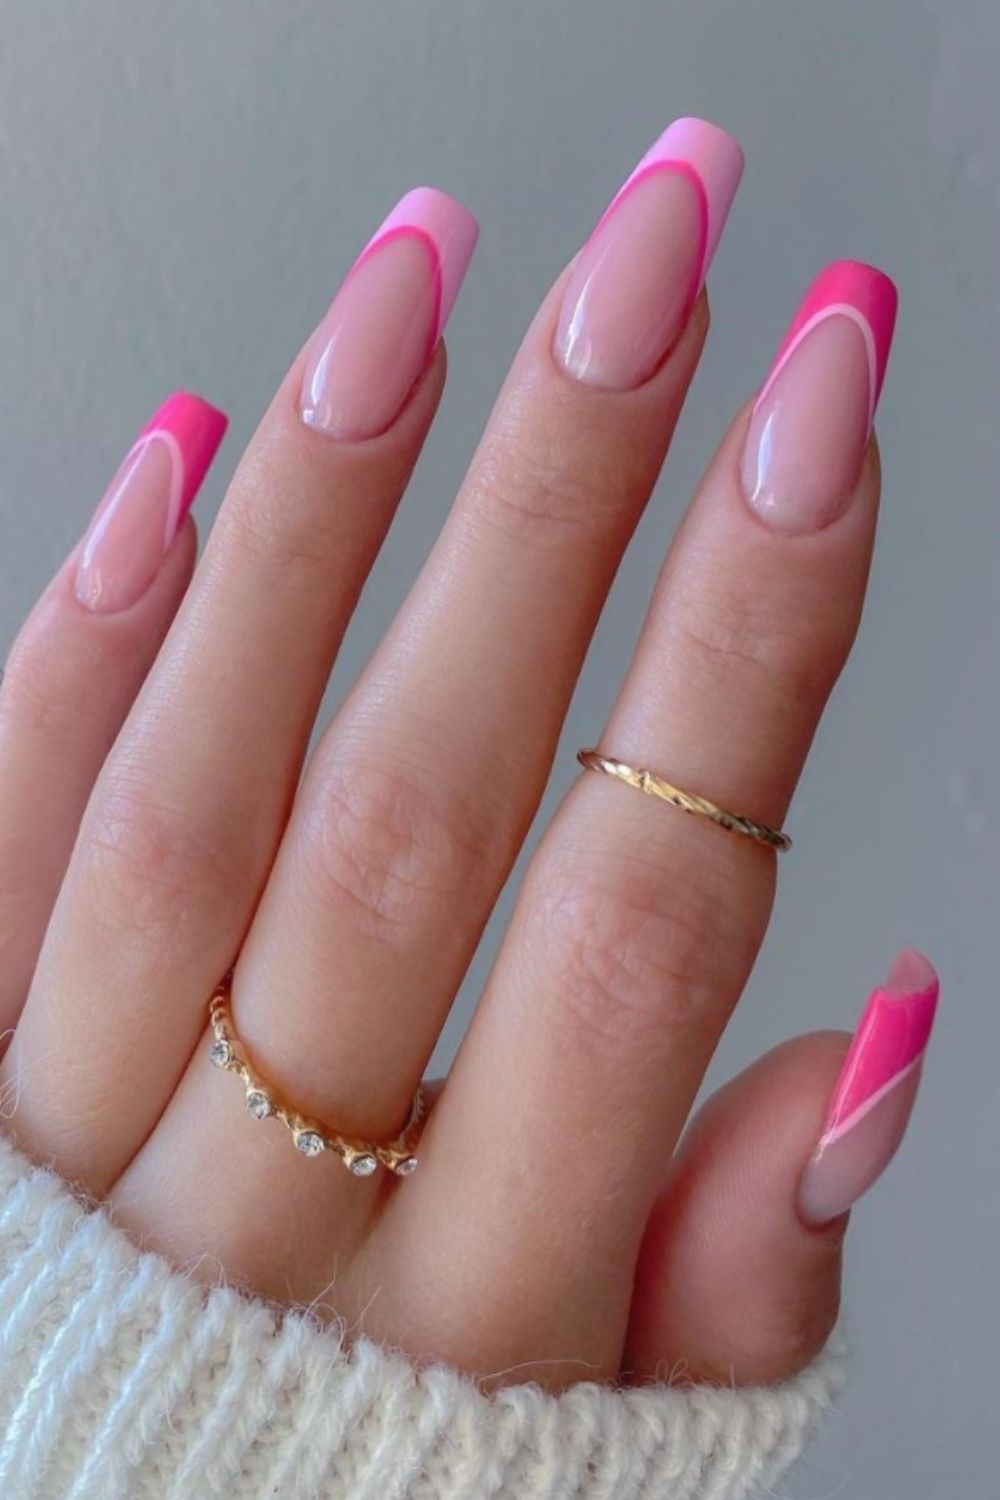 French tip coffin style nails